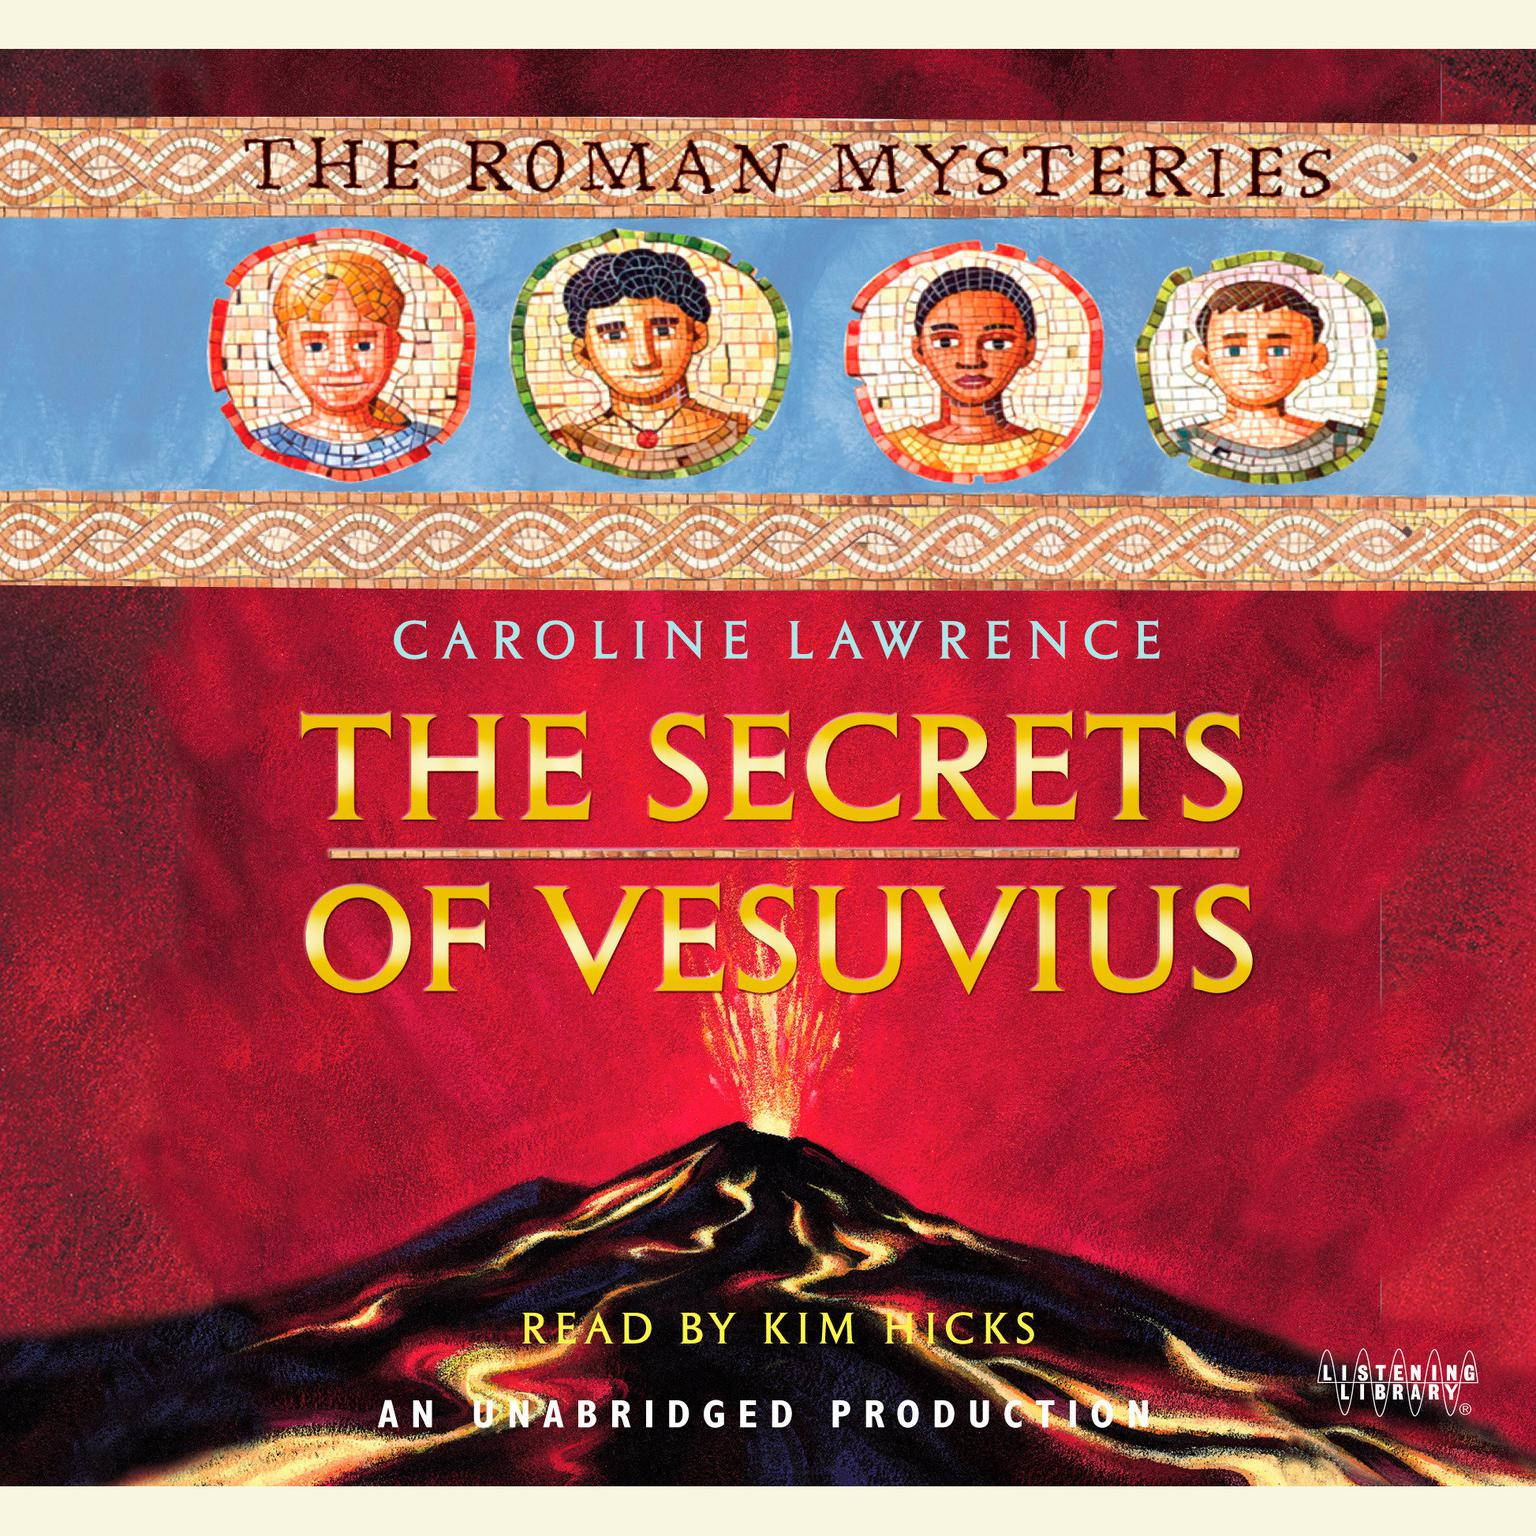 Printable The Secrets of Vesuvius: The Roman Mysteries Book 2 Audiobook Cover Art